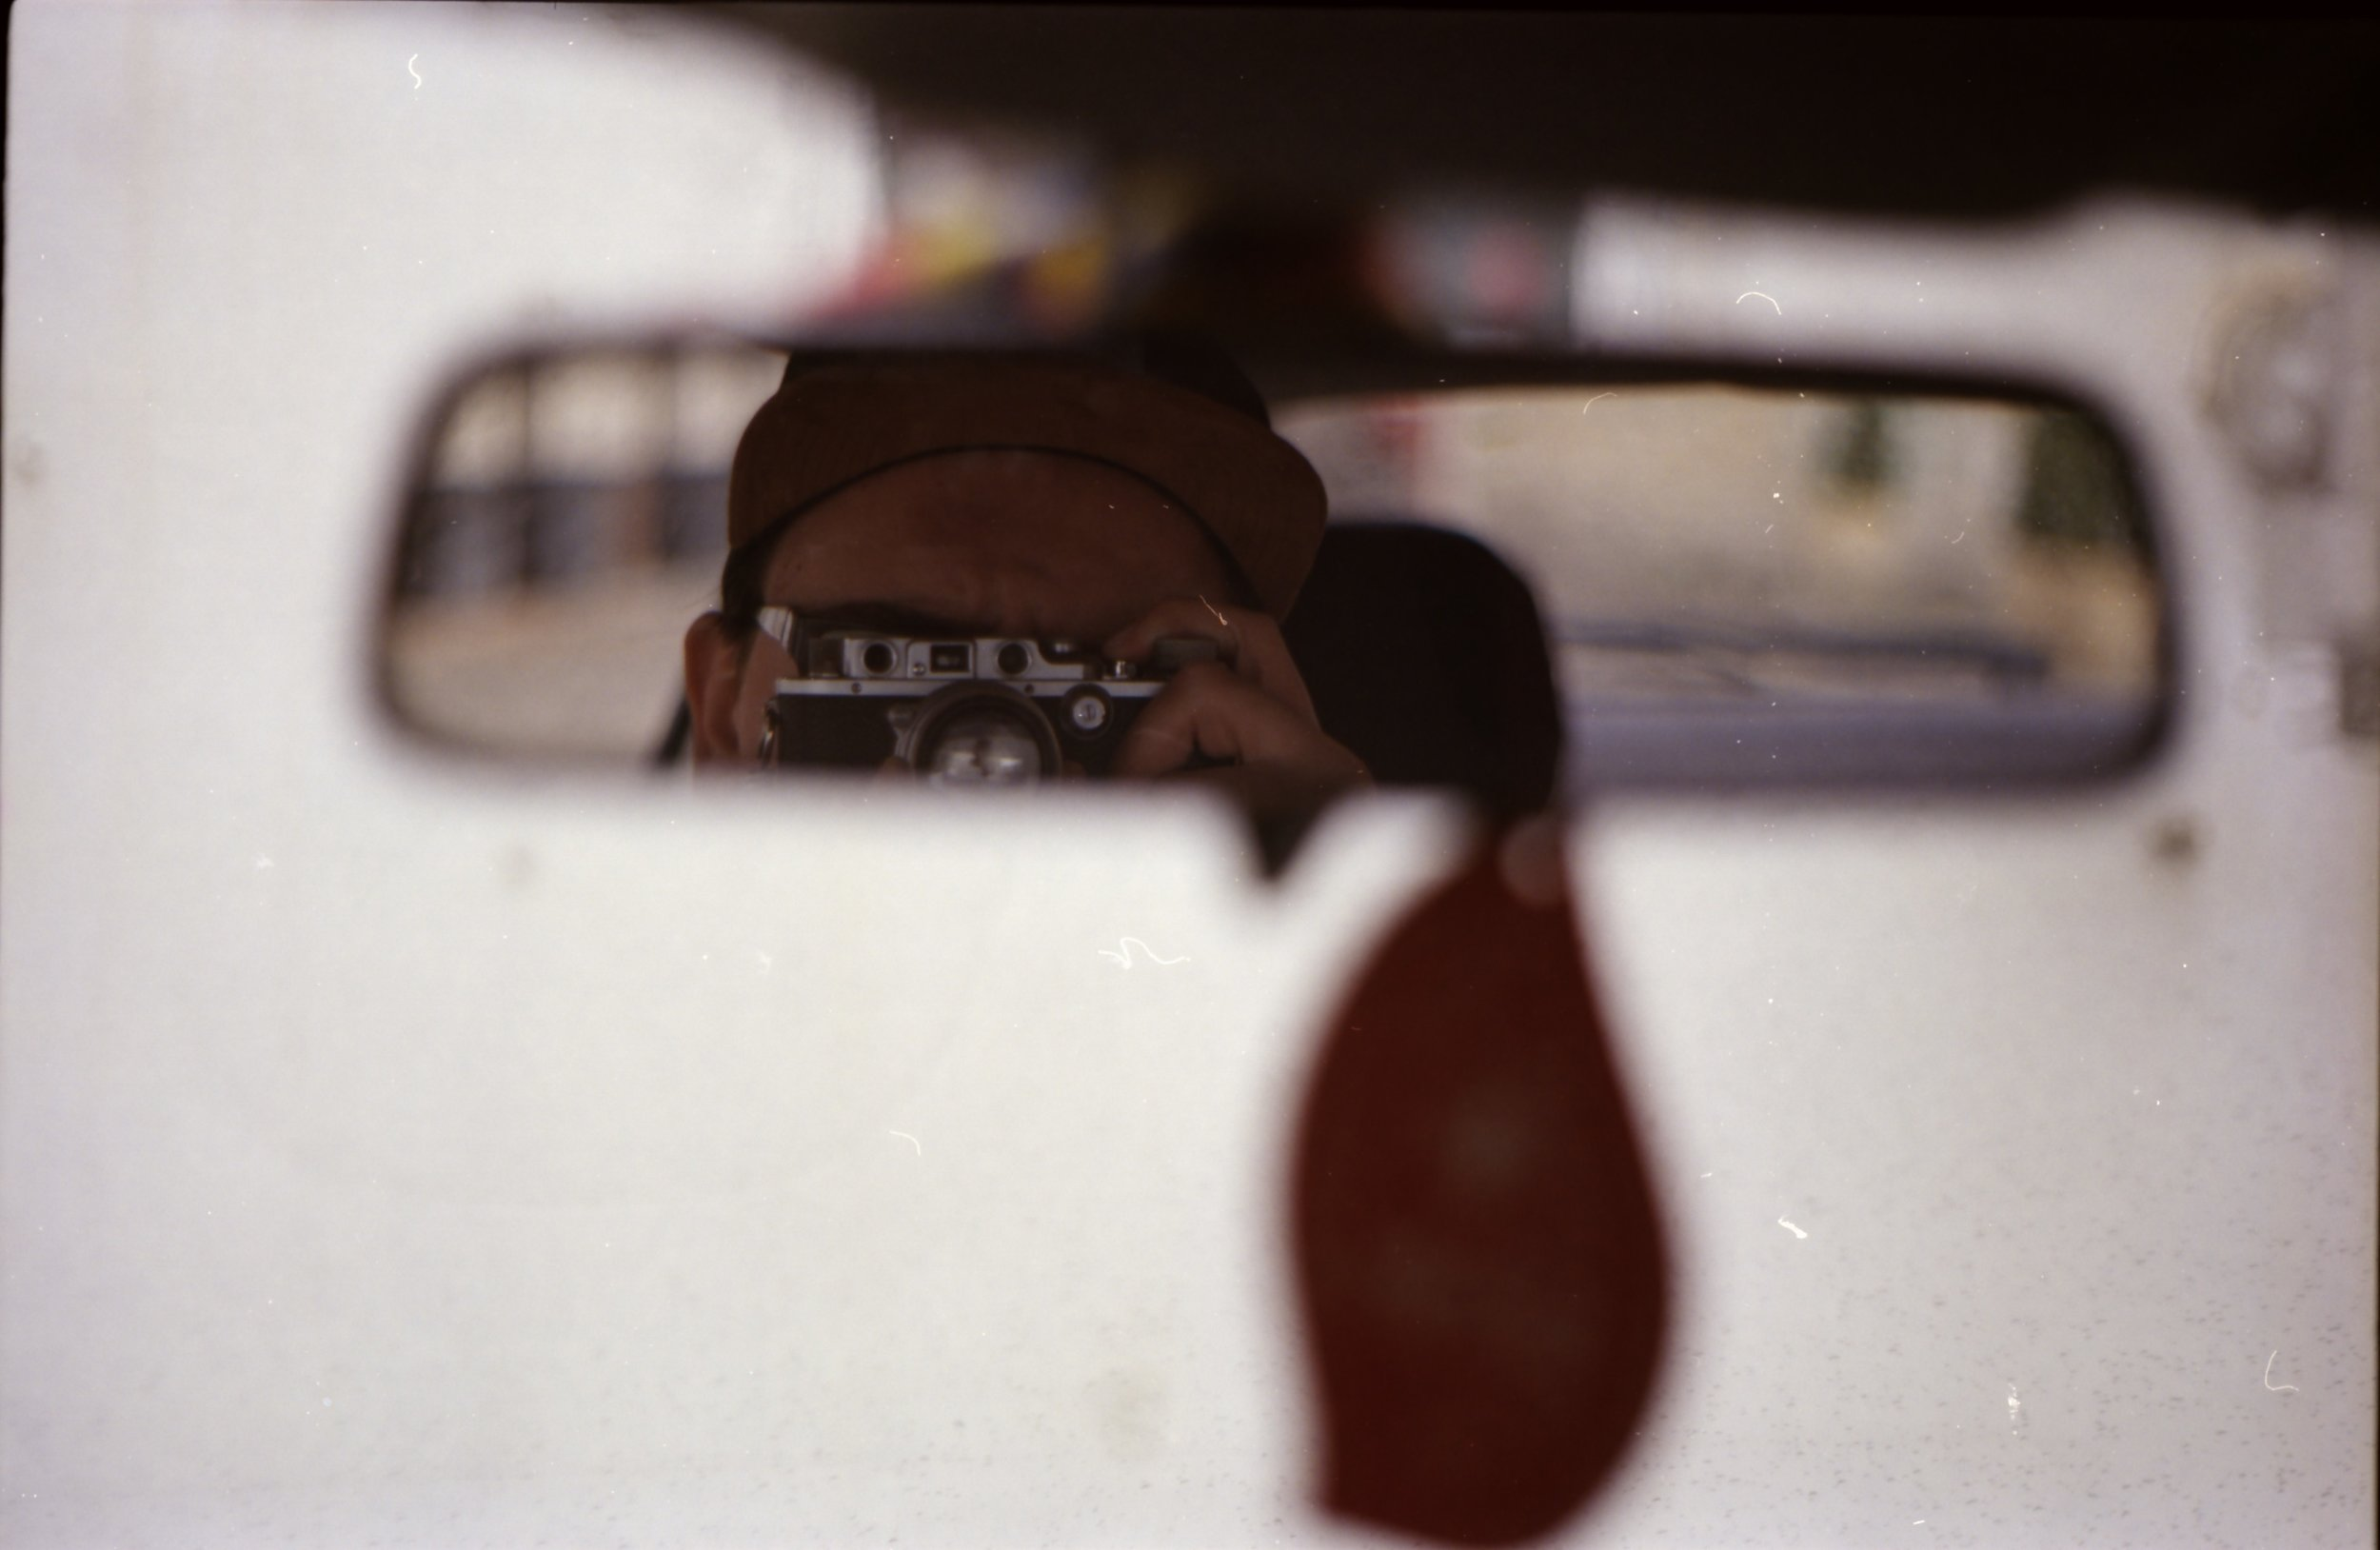 With my Leica IIIb in my car